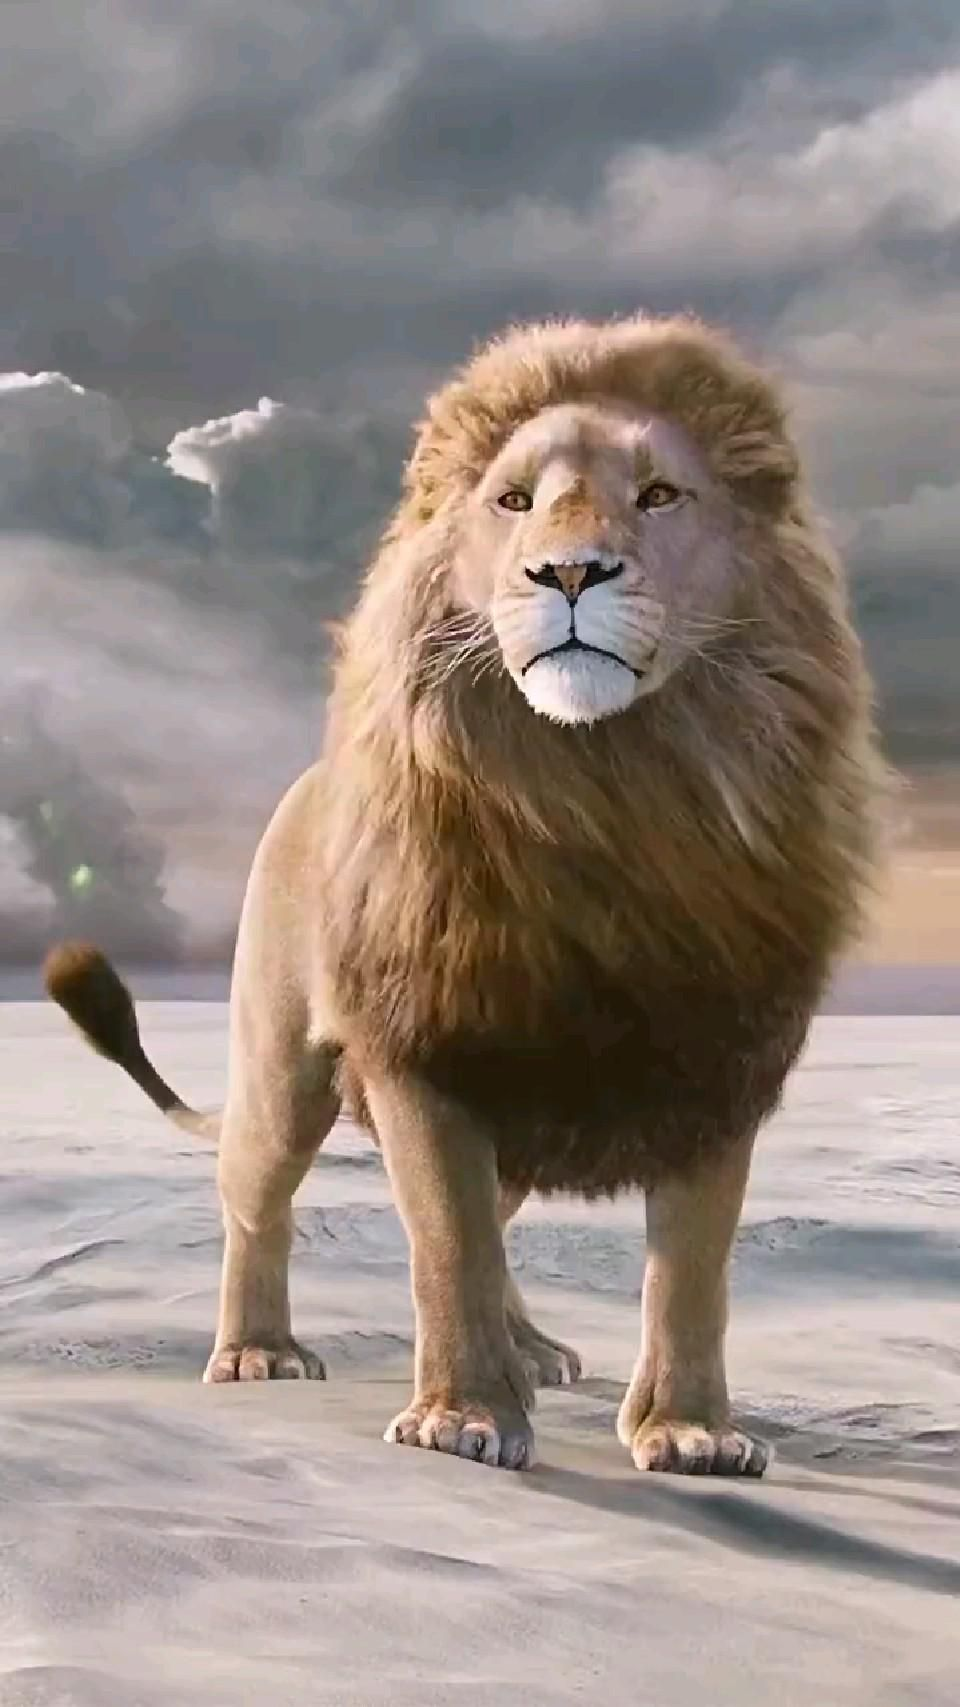 The Lion King 👑 🦁